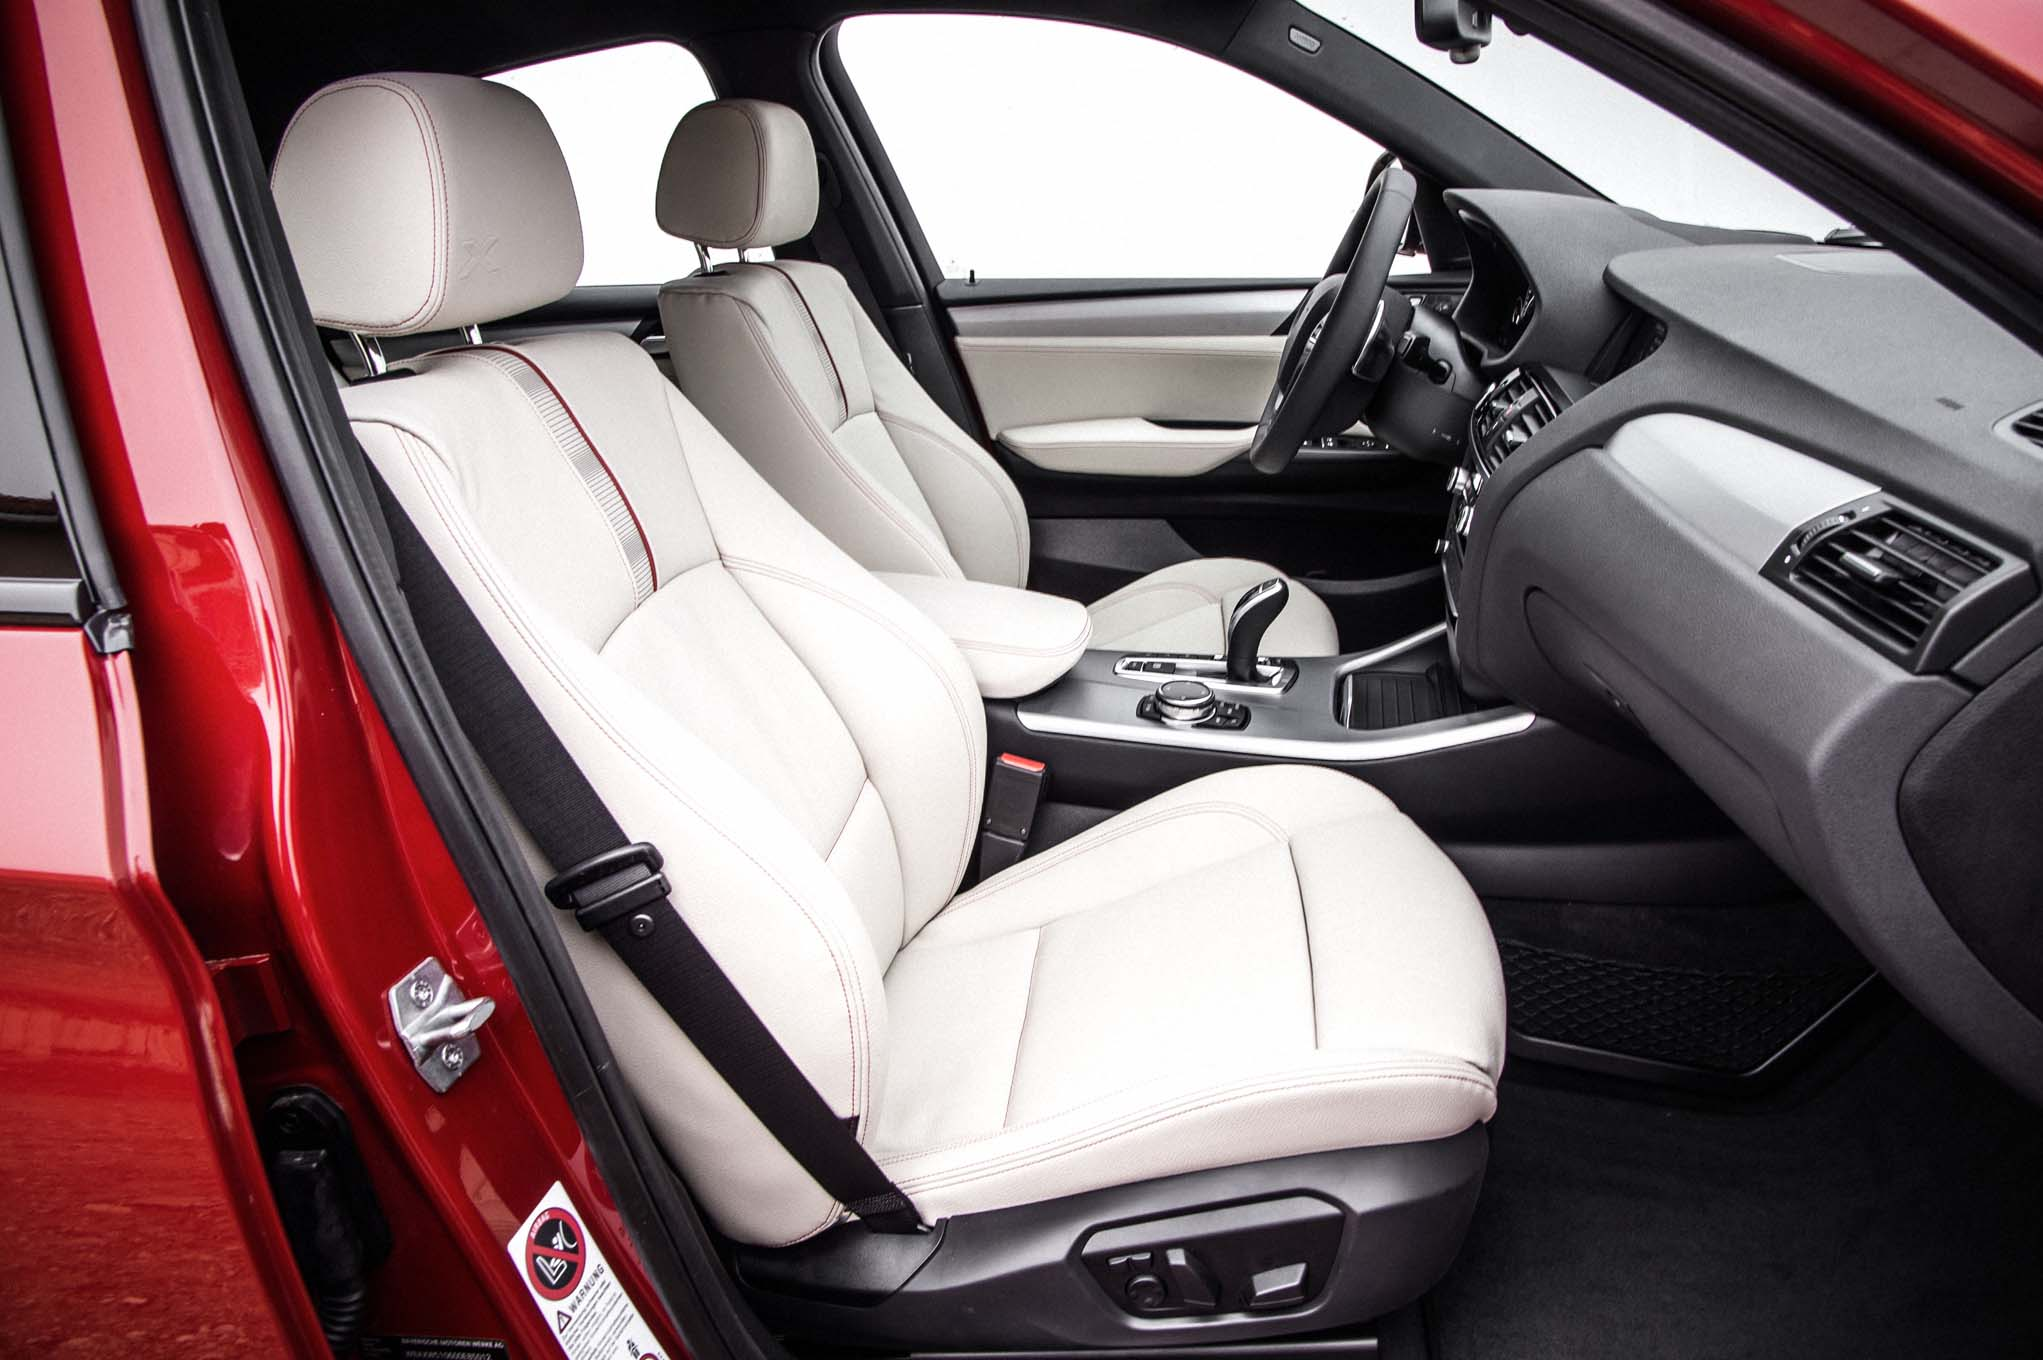 2015 Bmw X4 Front Seats Interior (Photo 5 of 13)